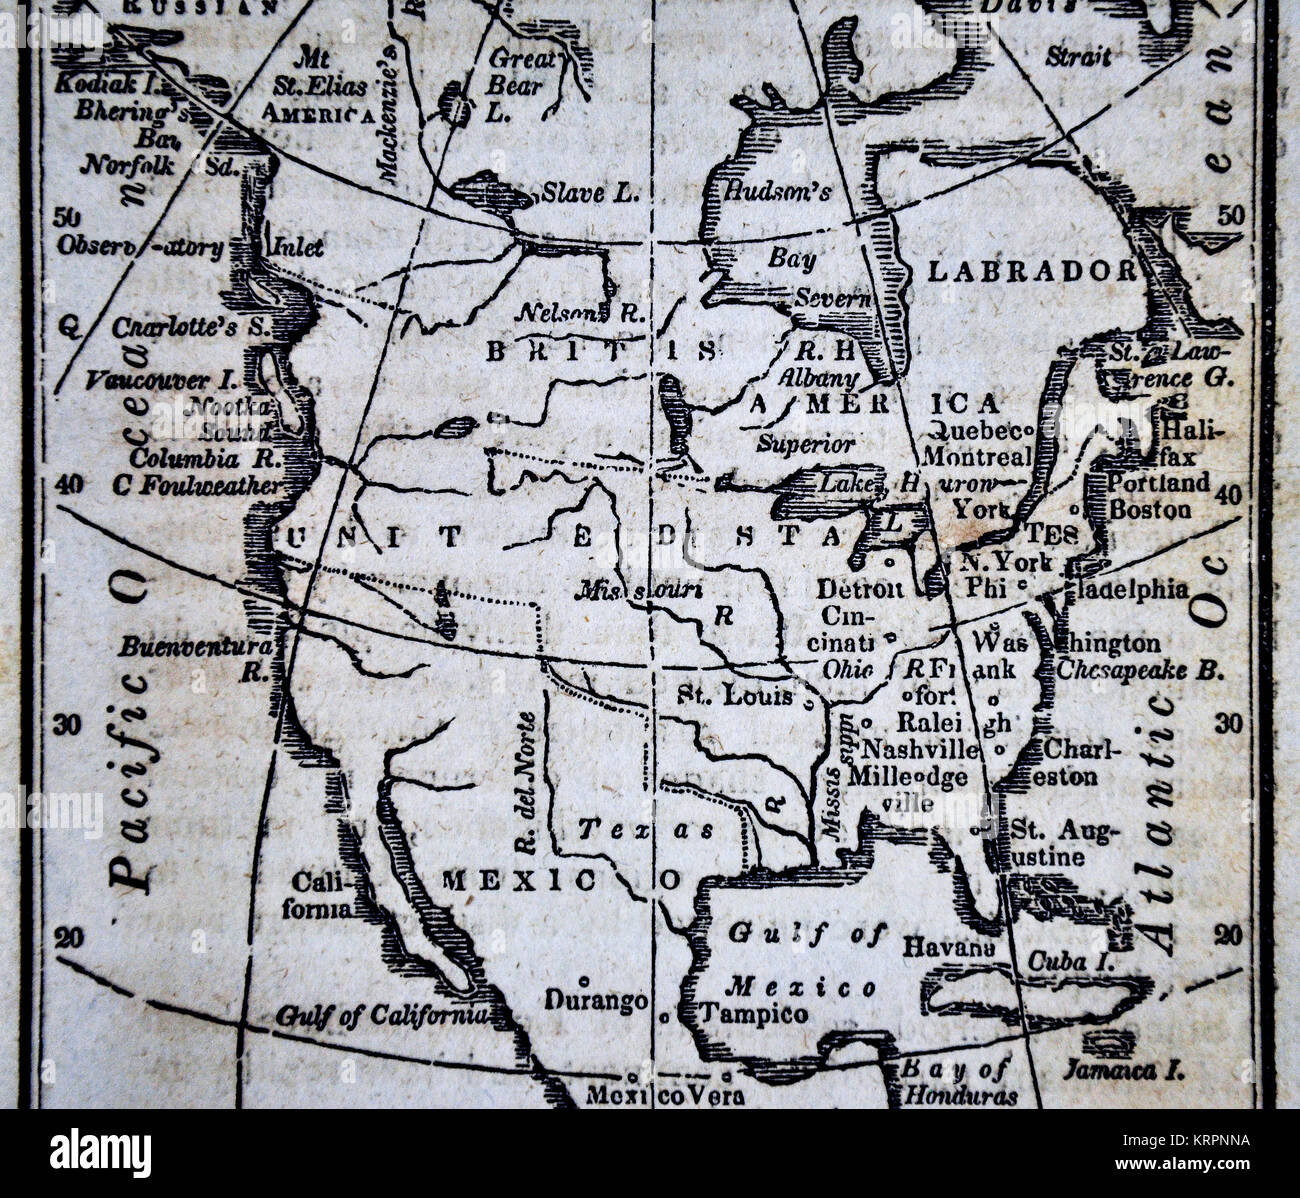 1830 Us Map.1830 Nathan Hale Map North America United States Canada Mexico